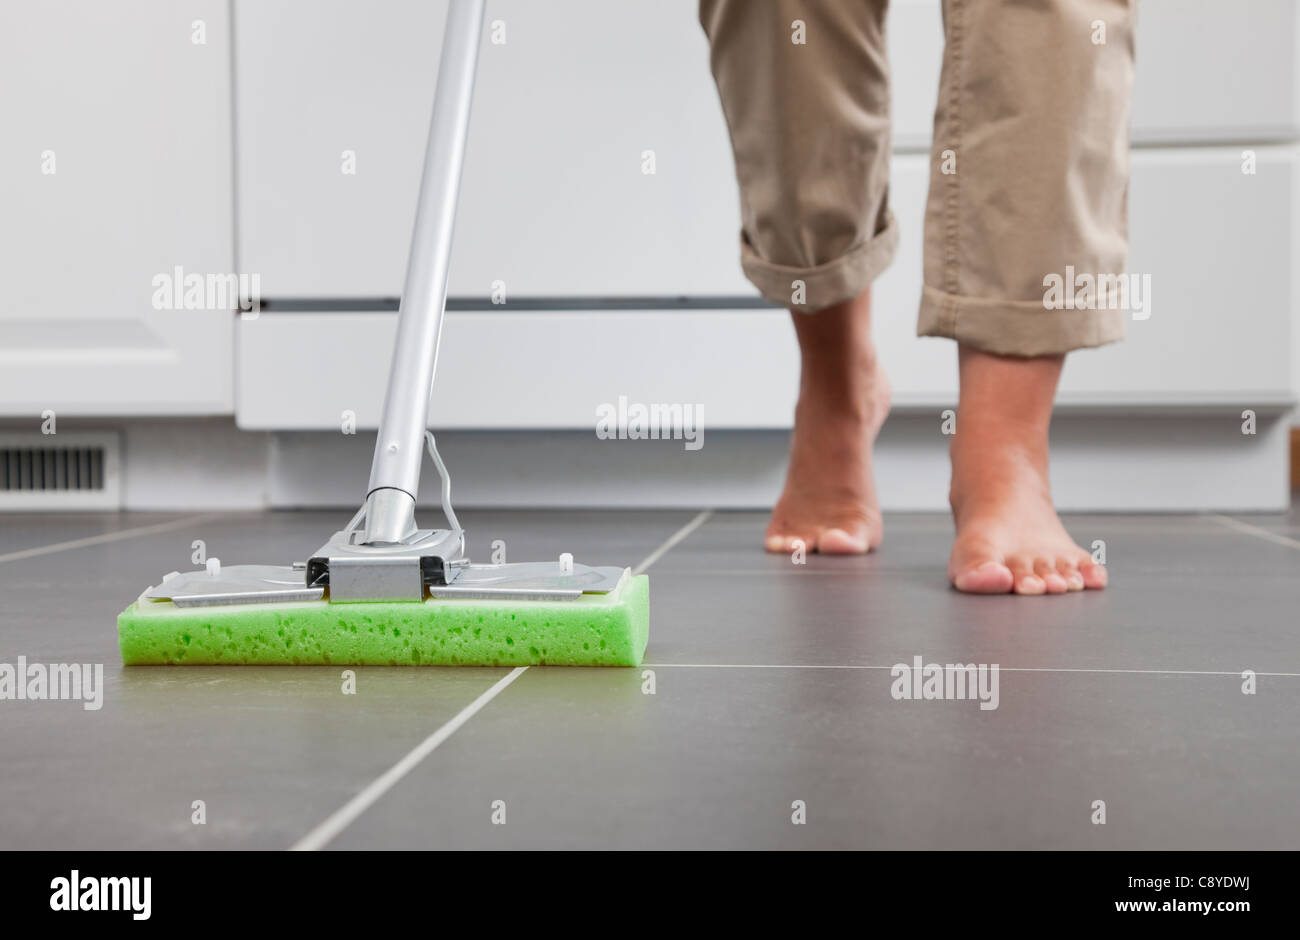 USA, Illinois, Metamora, Barefoot Woman Cleaning Kitchen Floor, Low Section